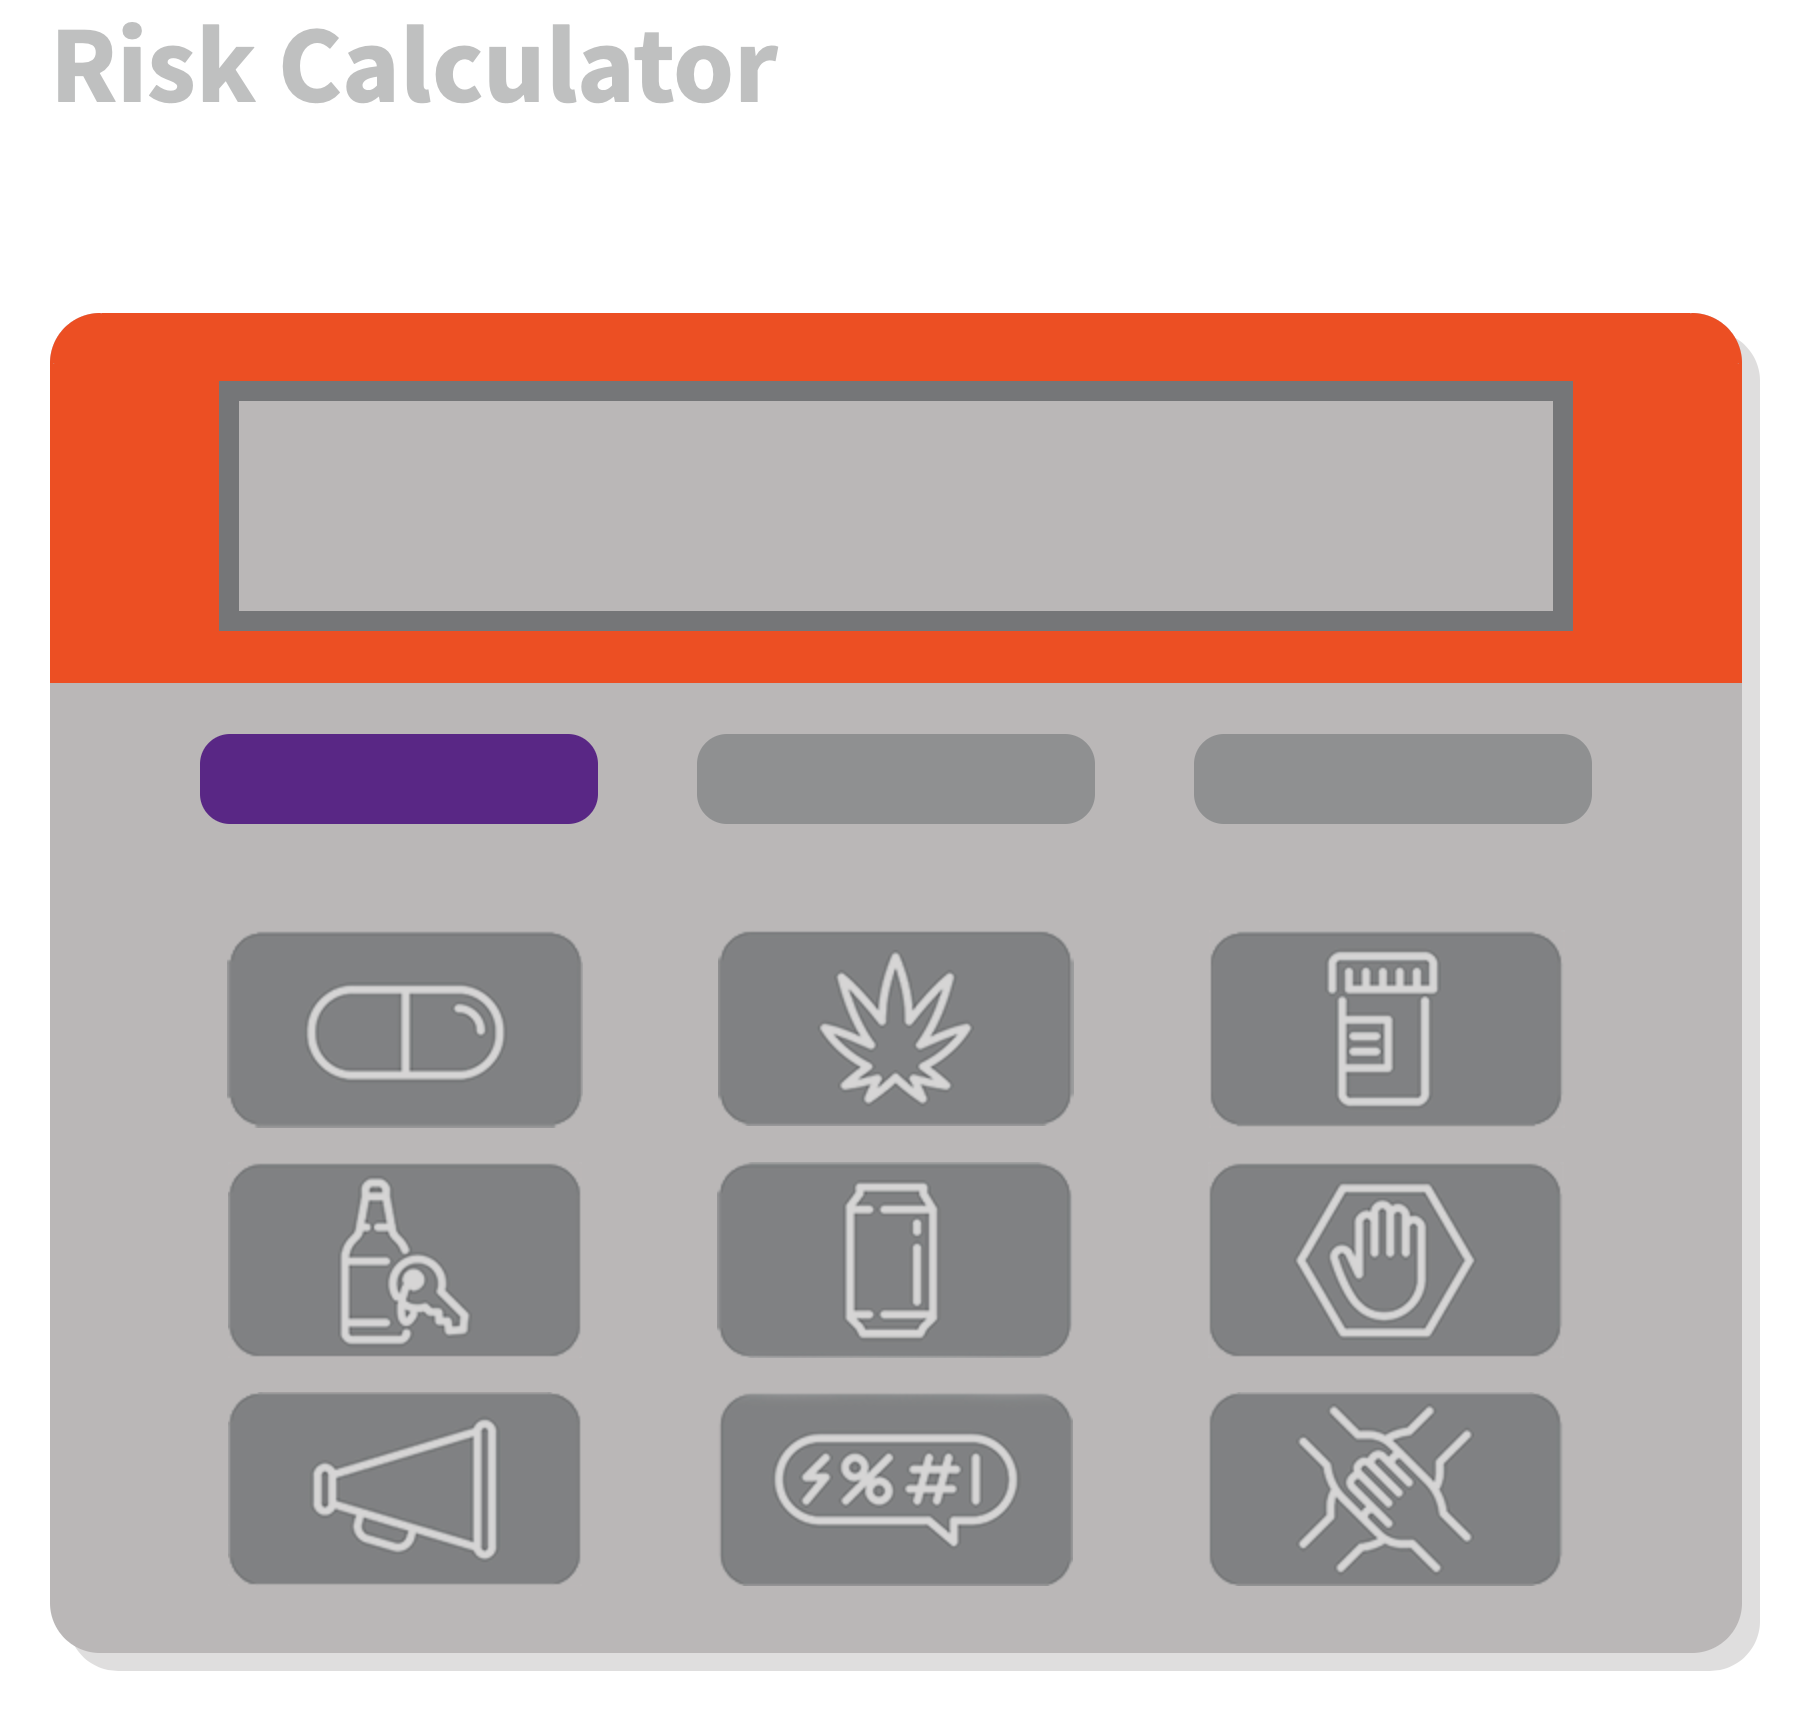 Interactive Risk Calculator